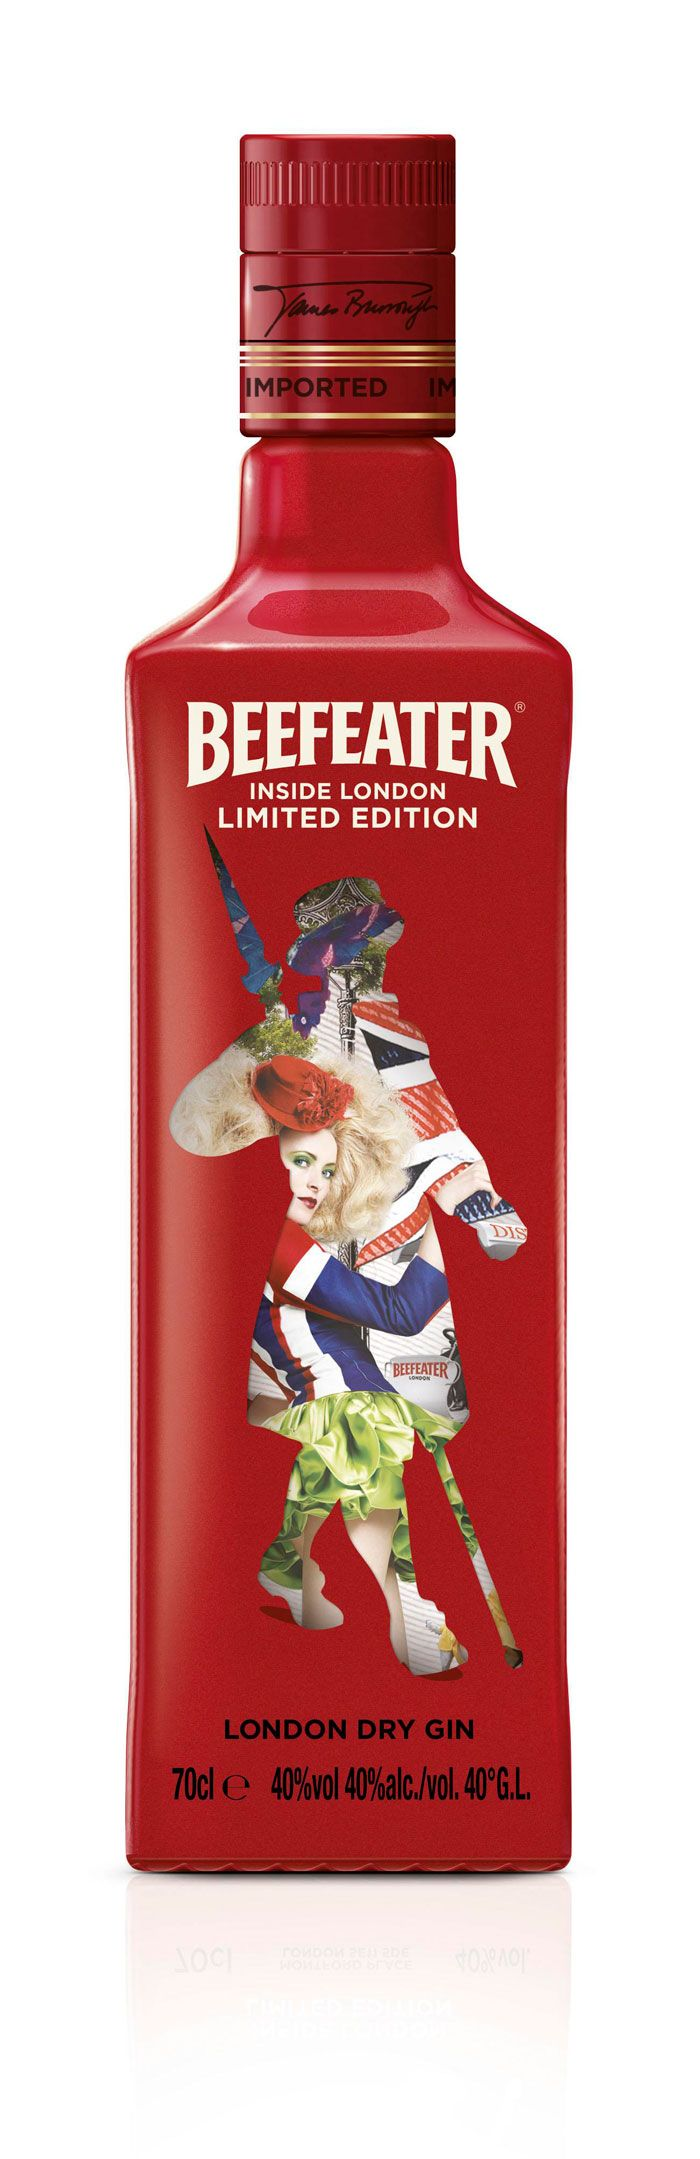 Special shrink sleeve label that features 'all things london' w/in the traditional royal guard : #Beefeater